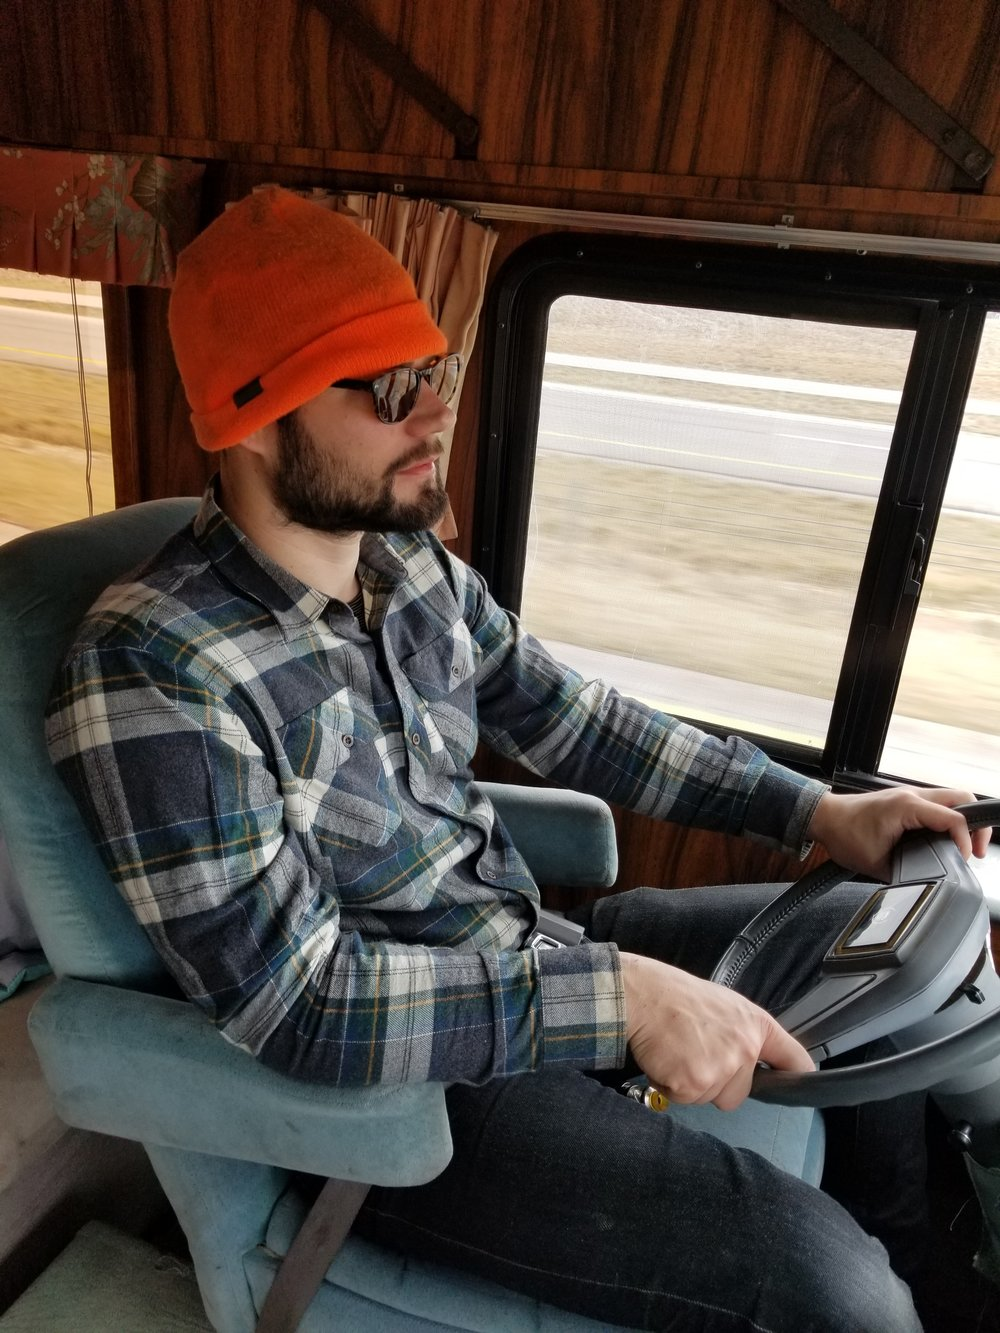 A fully cultivated long-haul look, complete with grease-stained blaze orange cap.